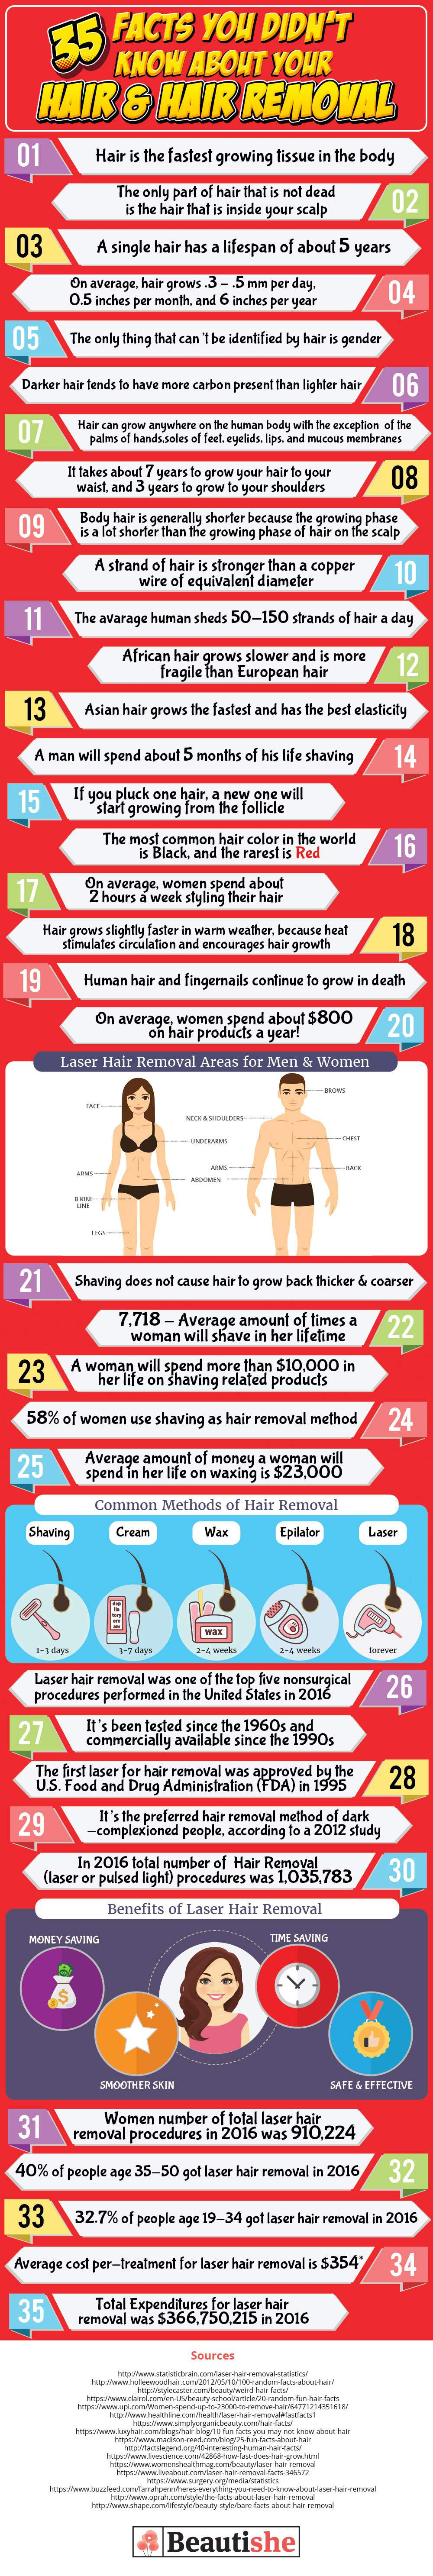 facts about hair and hair removal